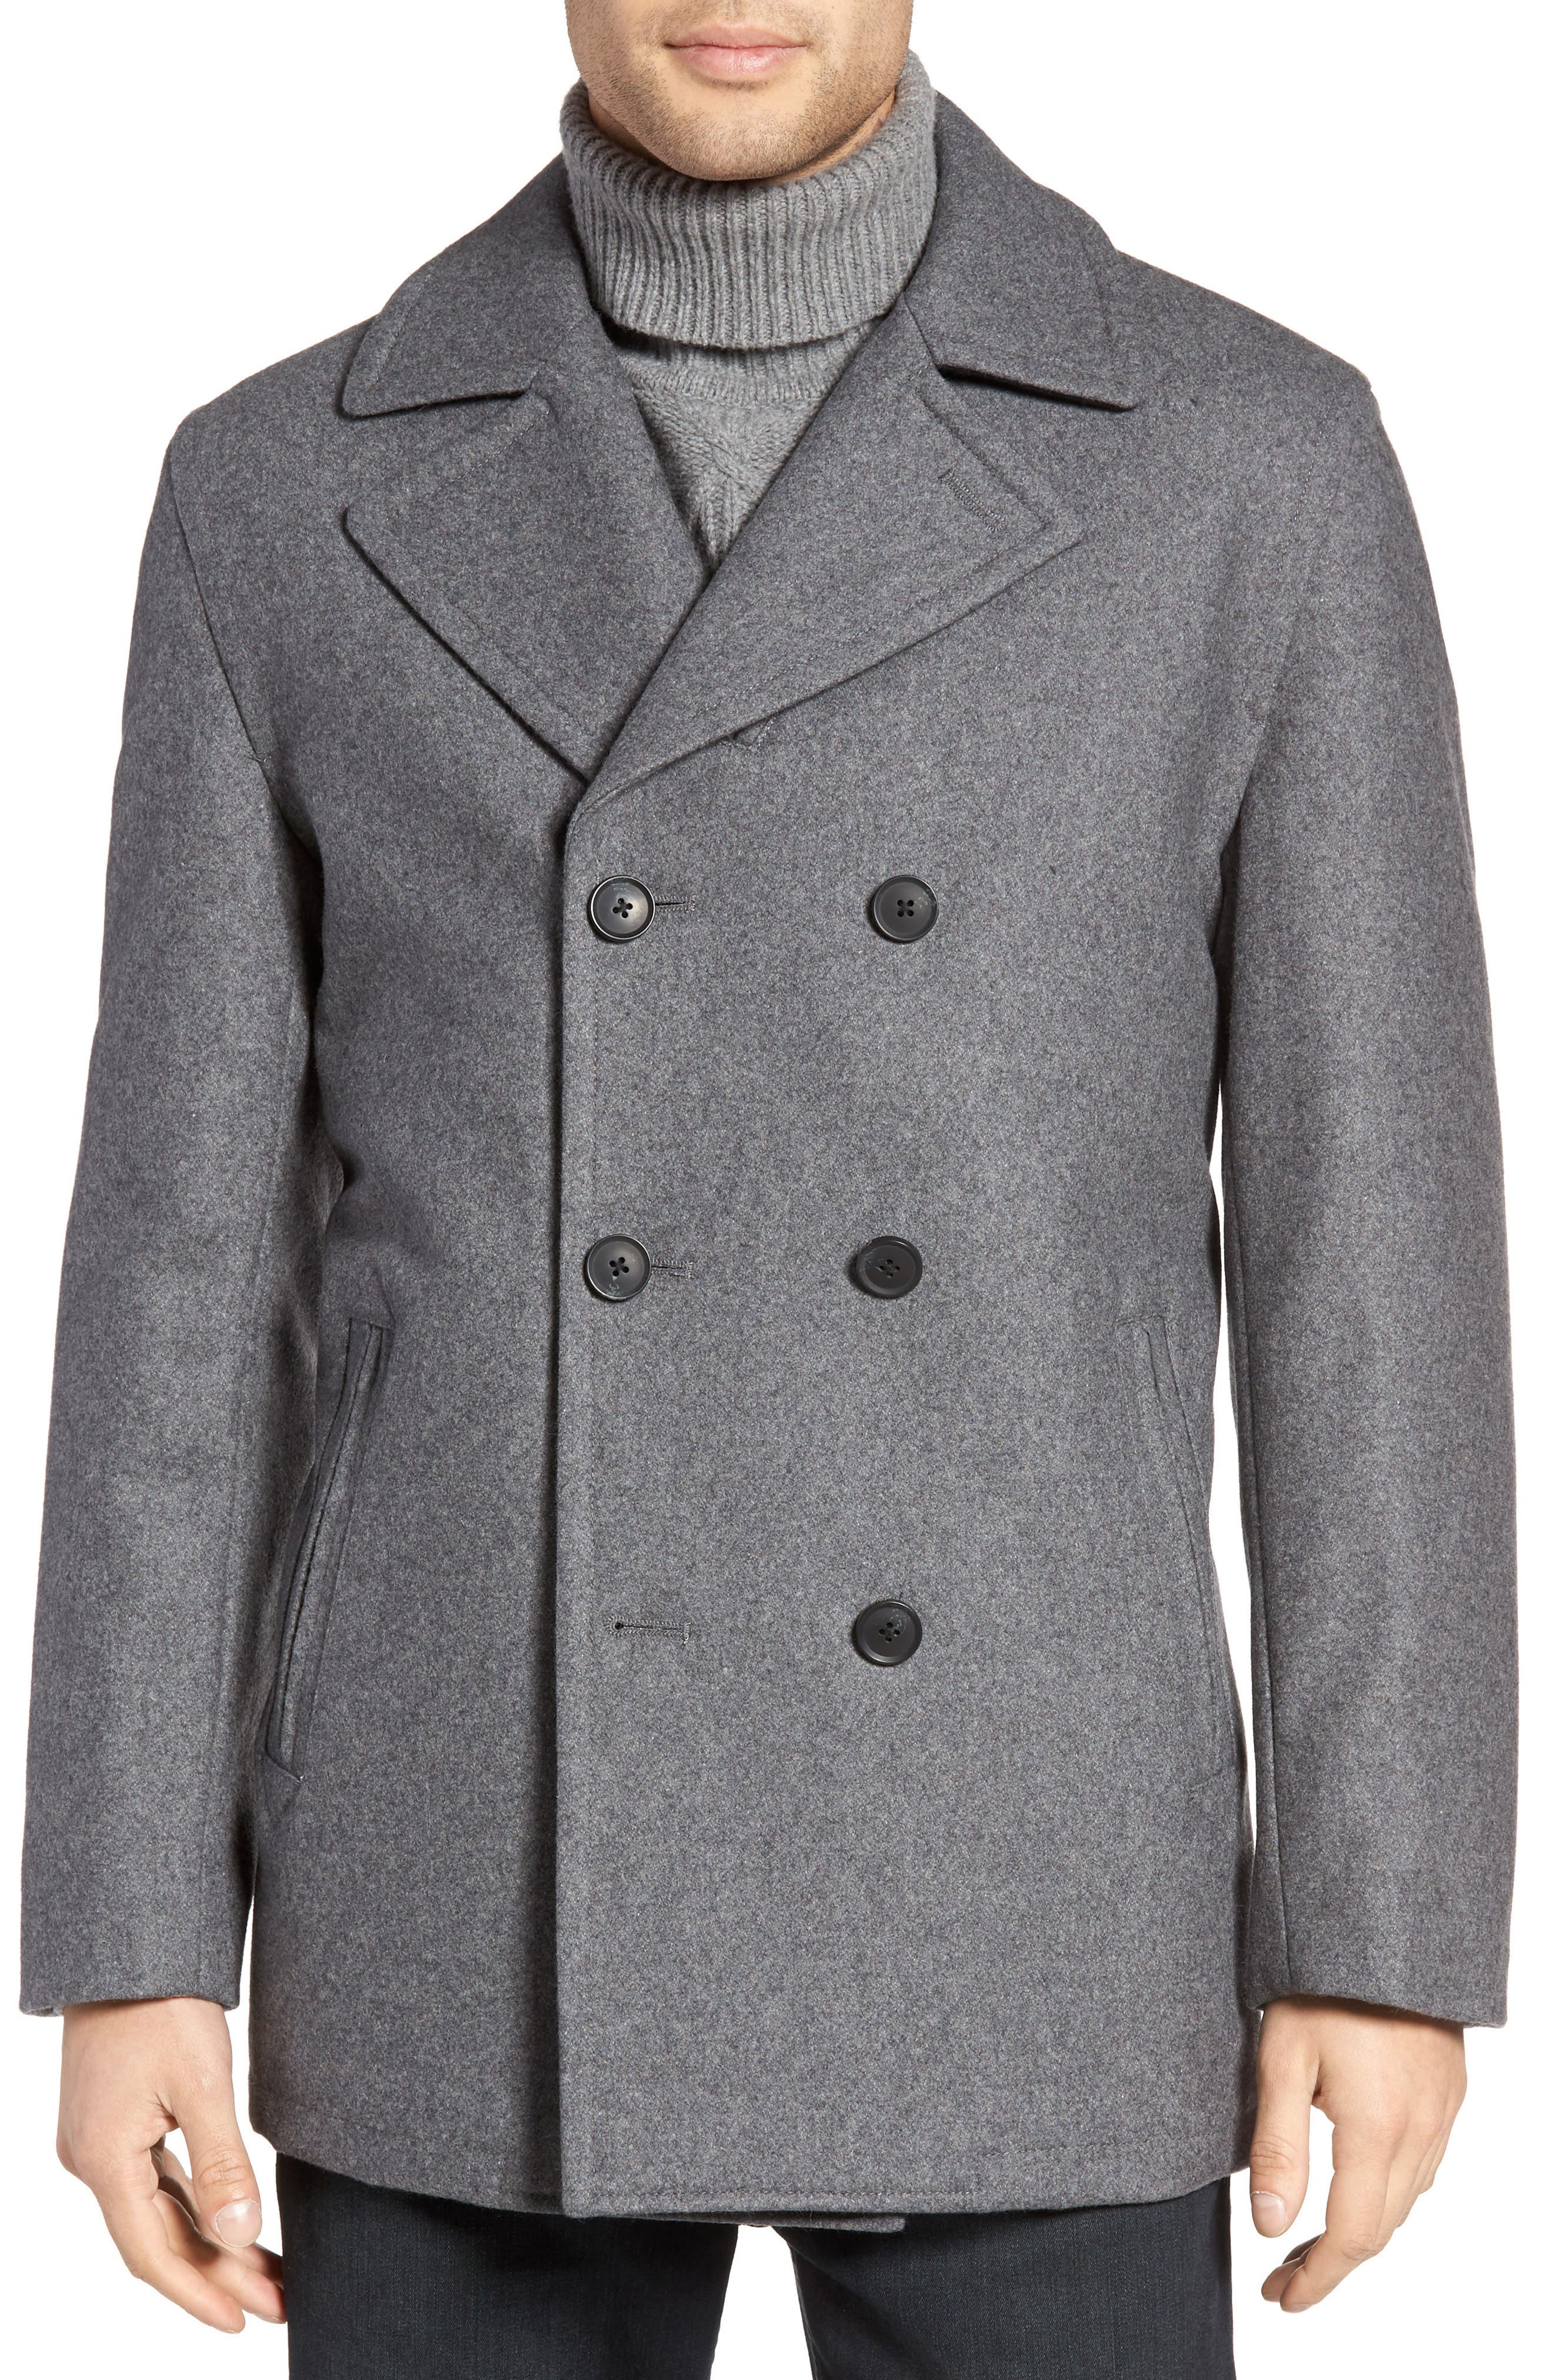 Wool Blend Double Breasted Peacoat,                             Alternate thumbnail 67, color,